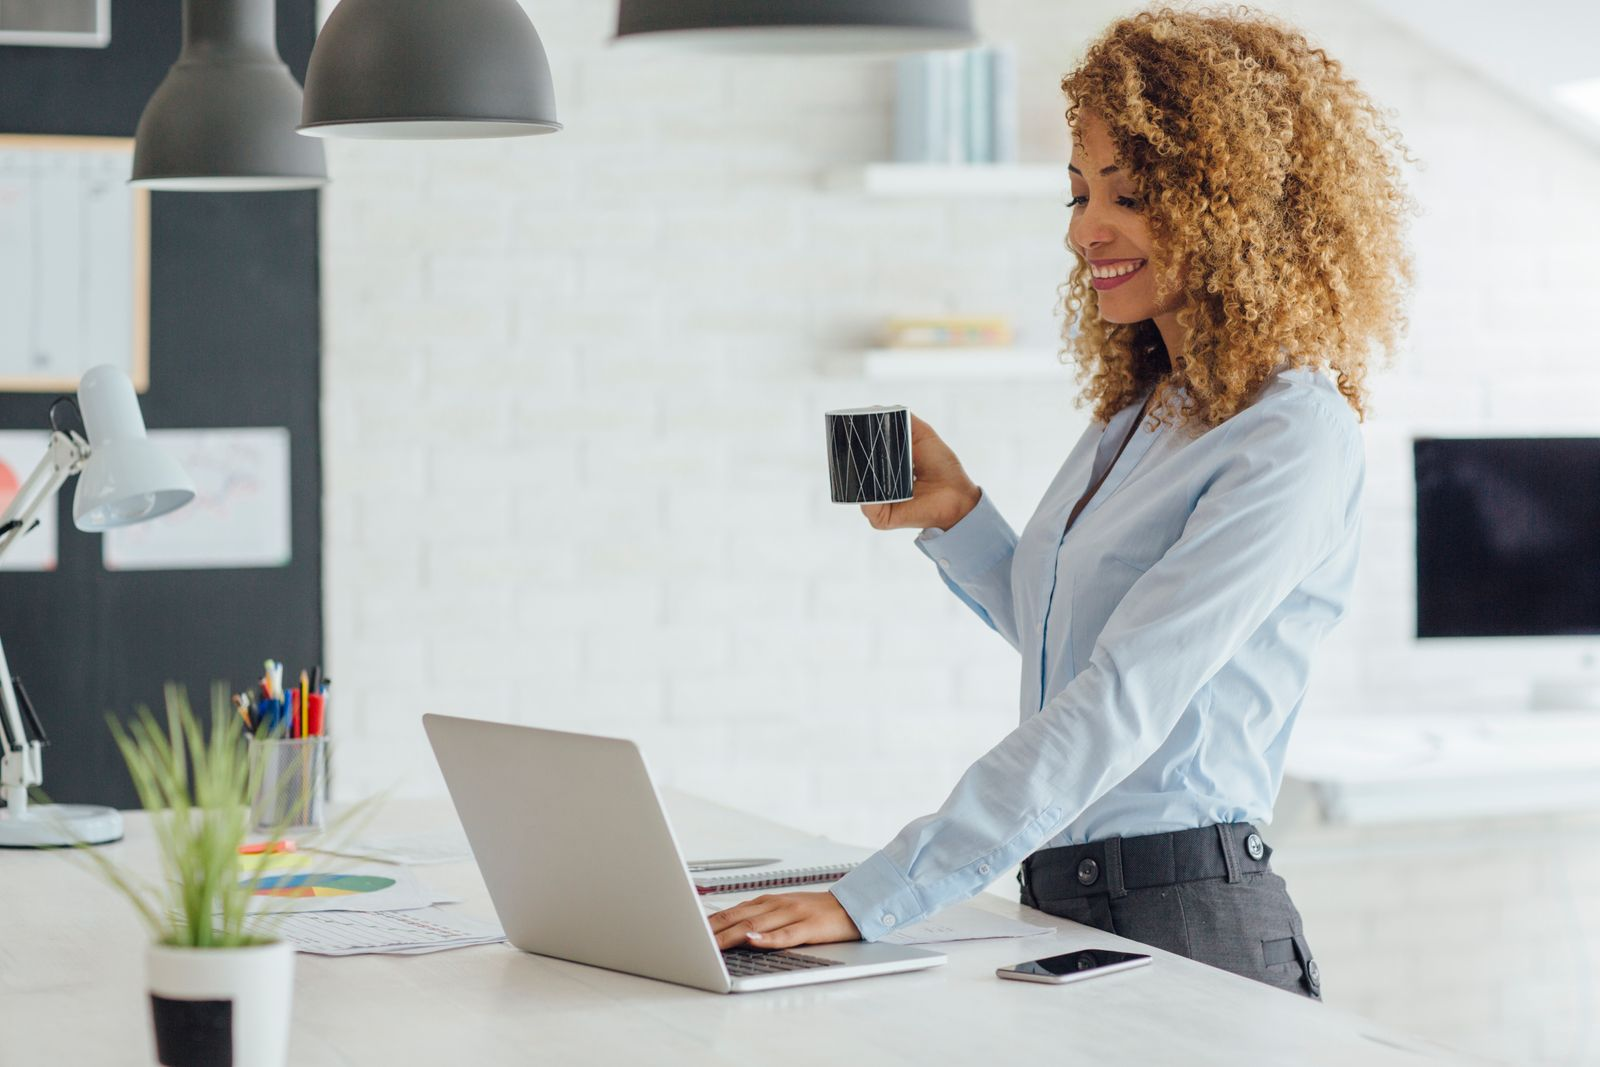 Businesswoman happily using her laptop and holding a mug